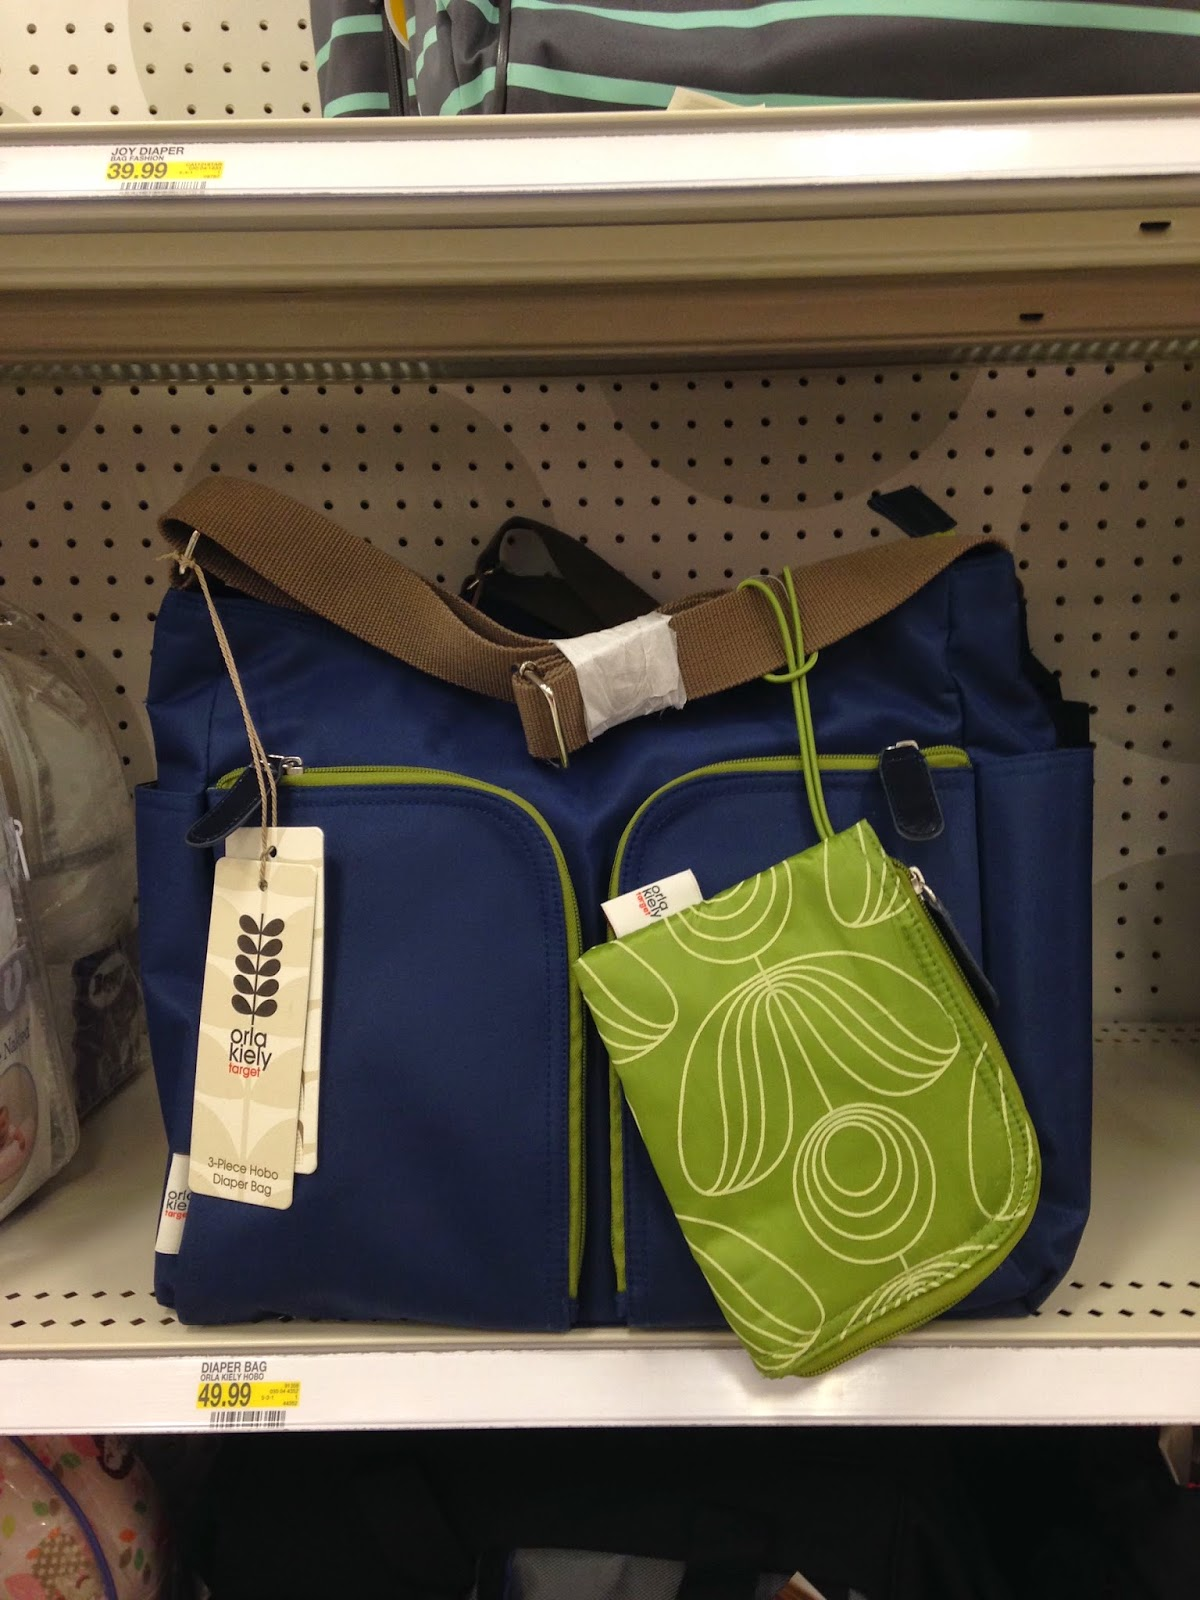 It Was Located With All Of The Other Diaper Bags Very Inconuously Placed No Prominent Display At End An Aisle Grand Orla Kiely Sign Like